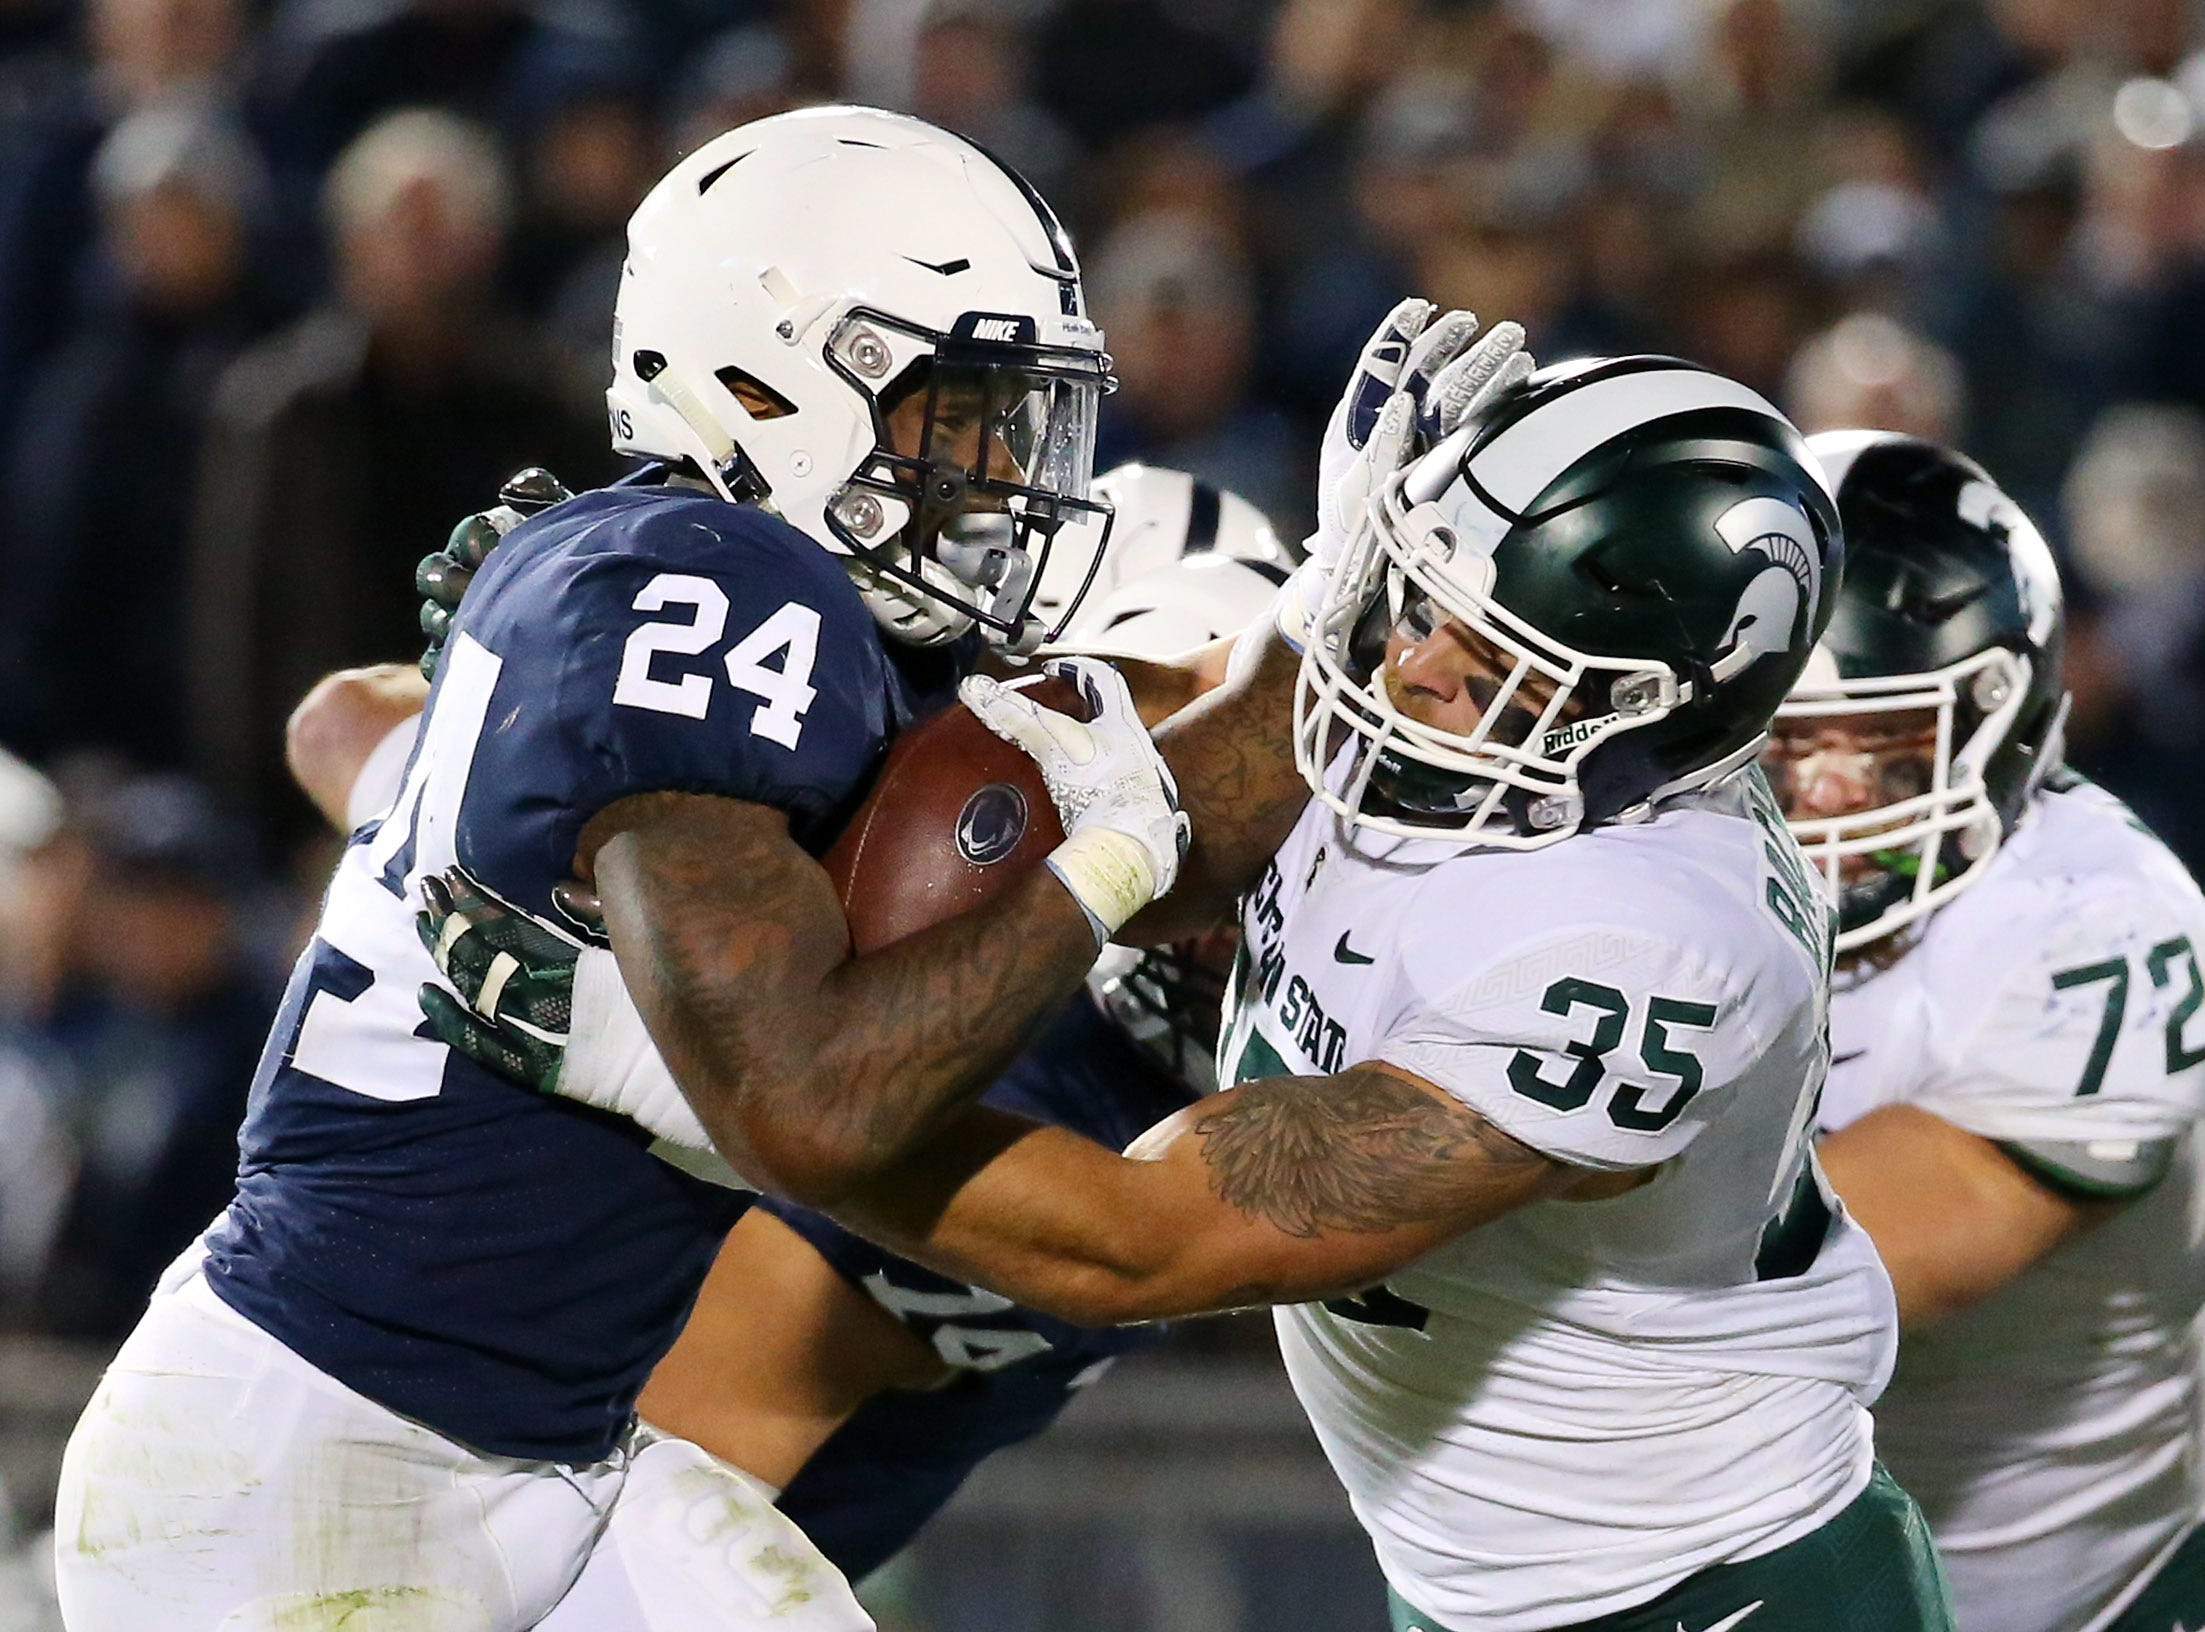 Oct 13, 2018; University Park, PA, USA; Michigan State Spartans linebacker Joe Bachie (35) tackles Penn State Nittany Lions running back Miles Sanders (24) during the fourth quarter at Beaver Stadium. Mandatory Credit: Rich Barnes-USA TODAY Sports